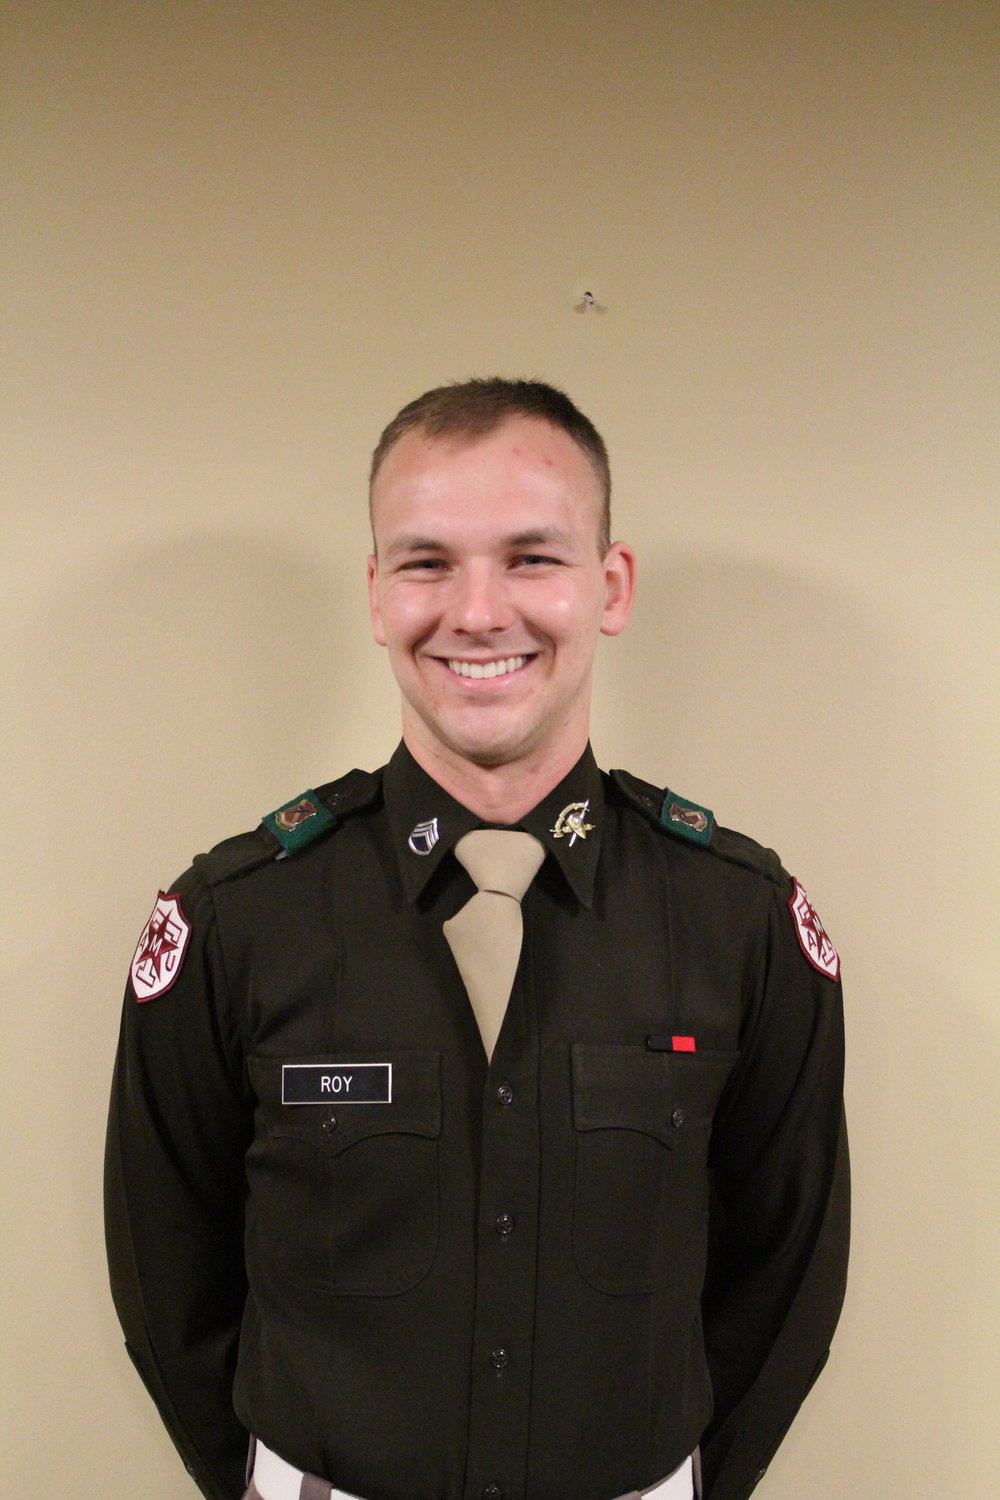 """Nicholas Roy '17 Hometown:Arlington, TX Major:Agriculture Business Involvement: TAMU CFFA Corp of Cadets Favorite Quote:"""" Those who labour in the earth are the chosen people of God..."""" Thomas Jefferson, Notes On Virginia (1785)"""